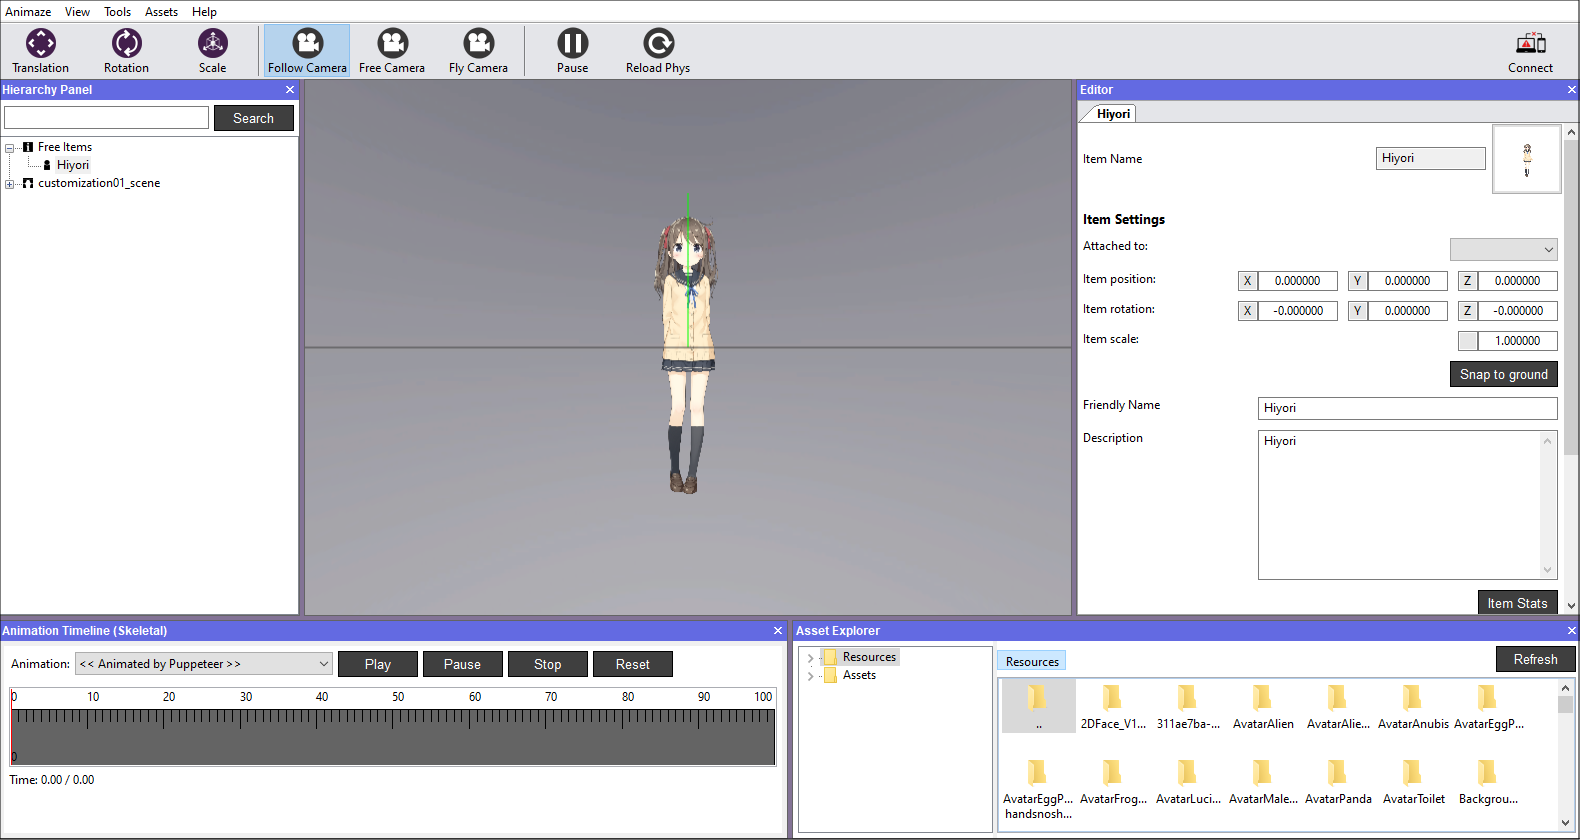 Once the avatar is imported, it will be displayed in the viewport.